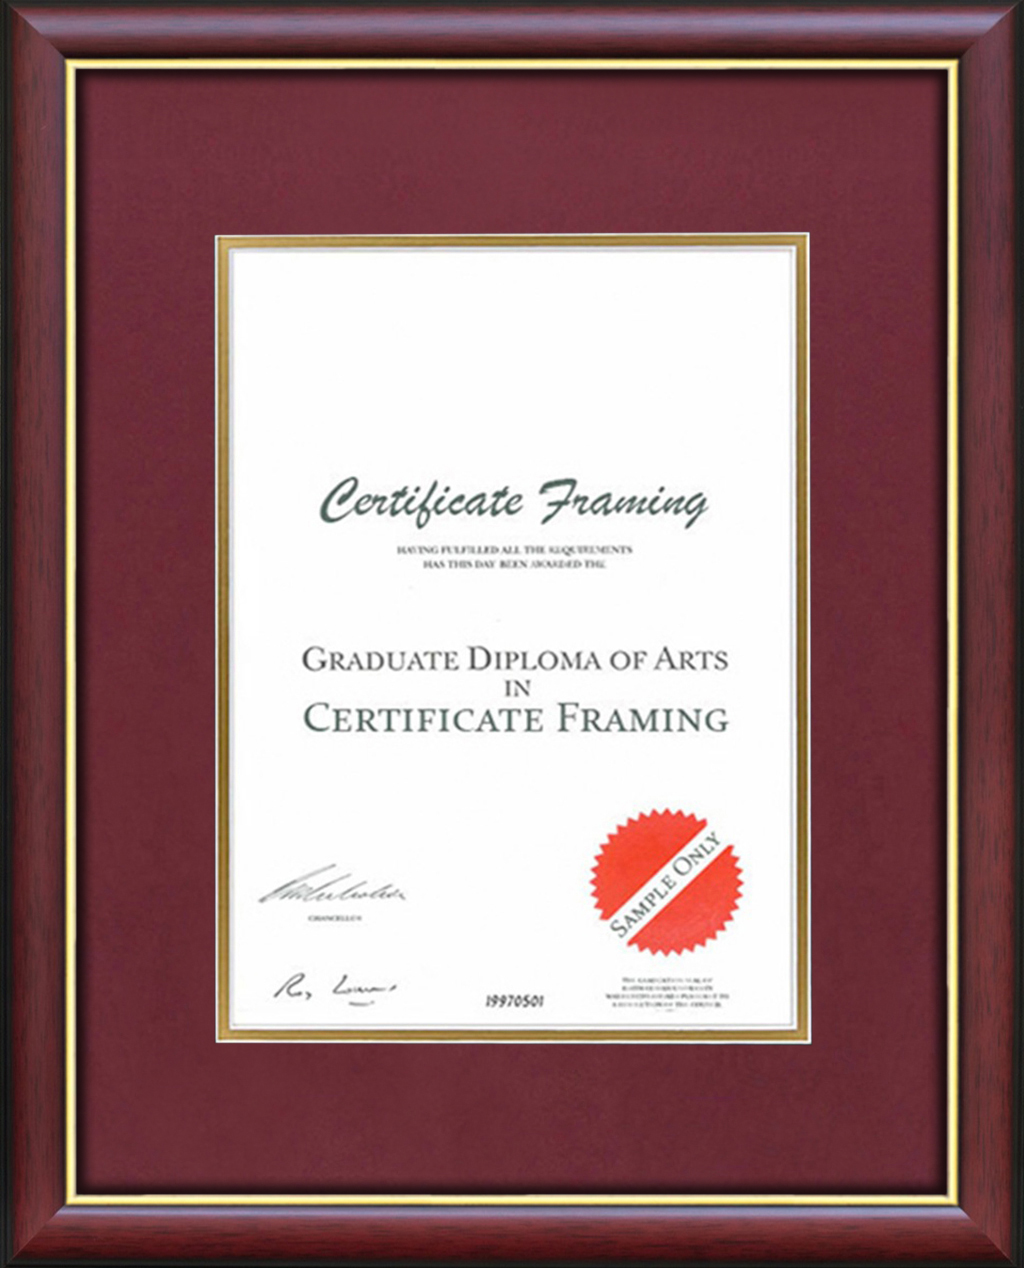 Certificate Frames made for A3 Size Professional Credentials.